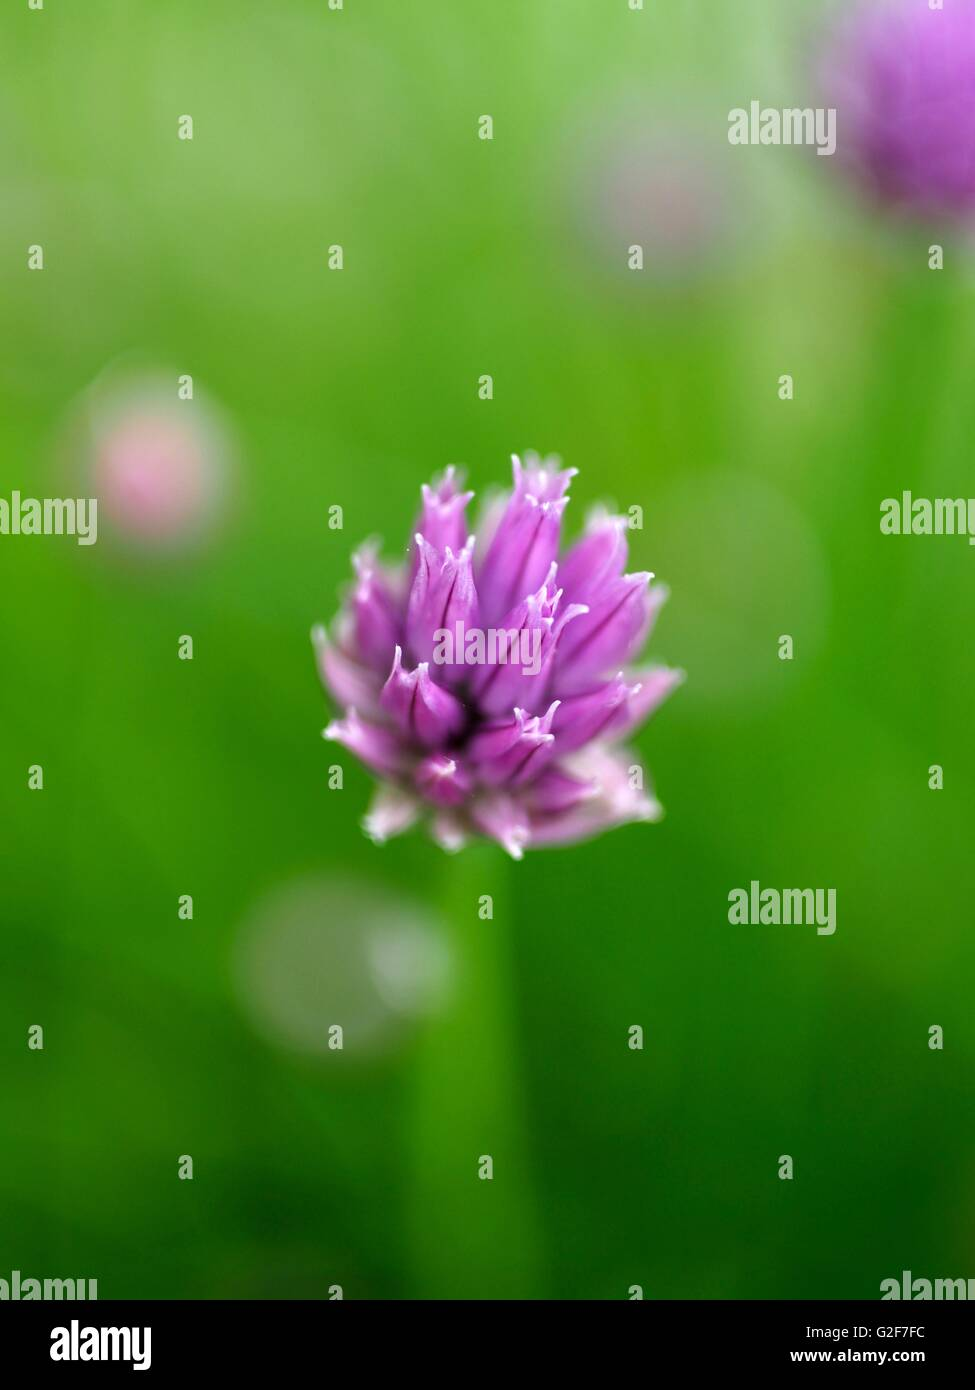 Chives purple flowers - Stock Image